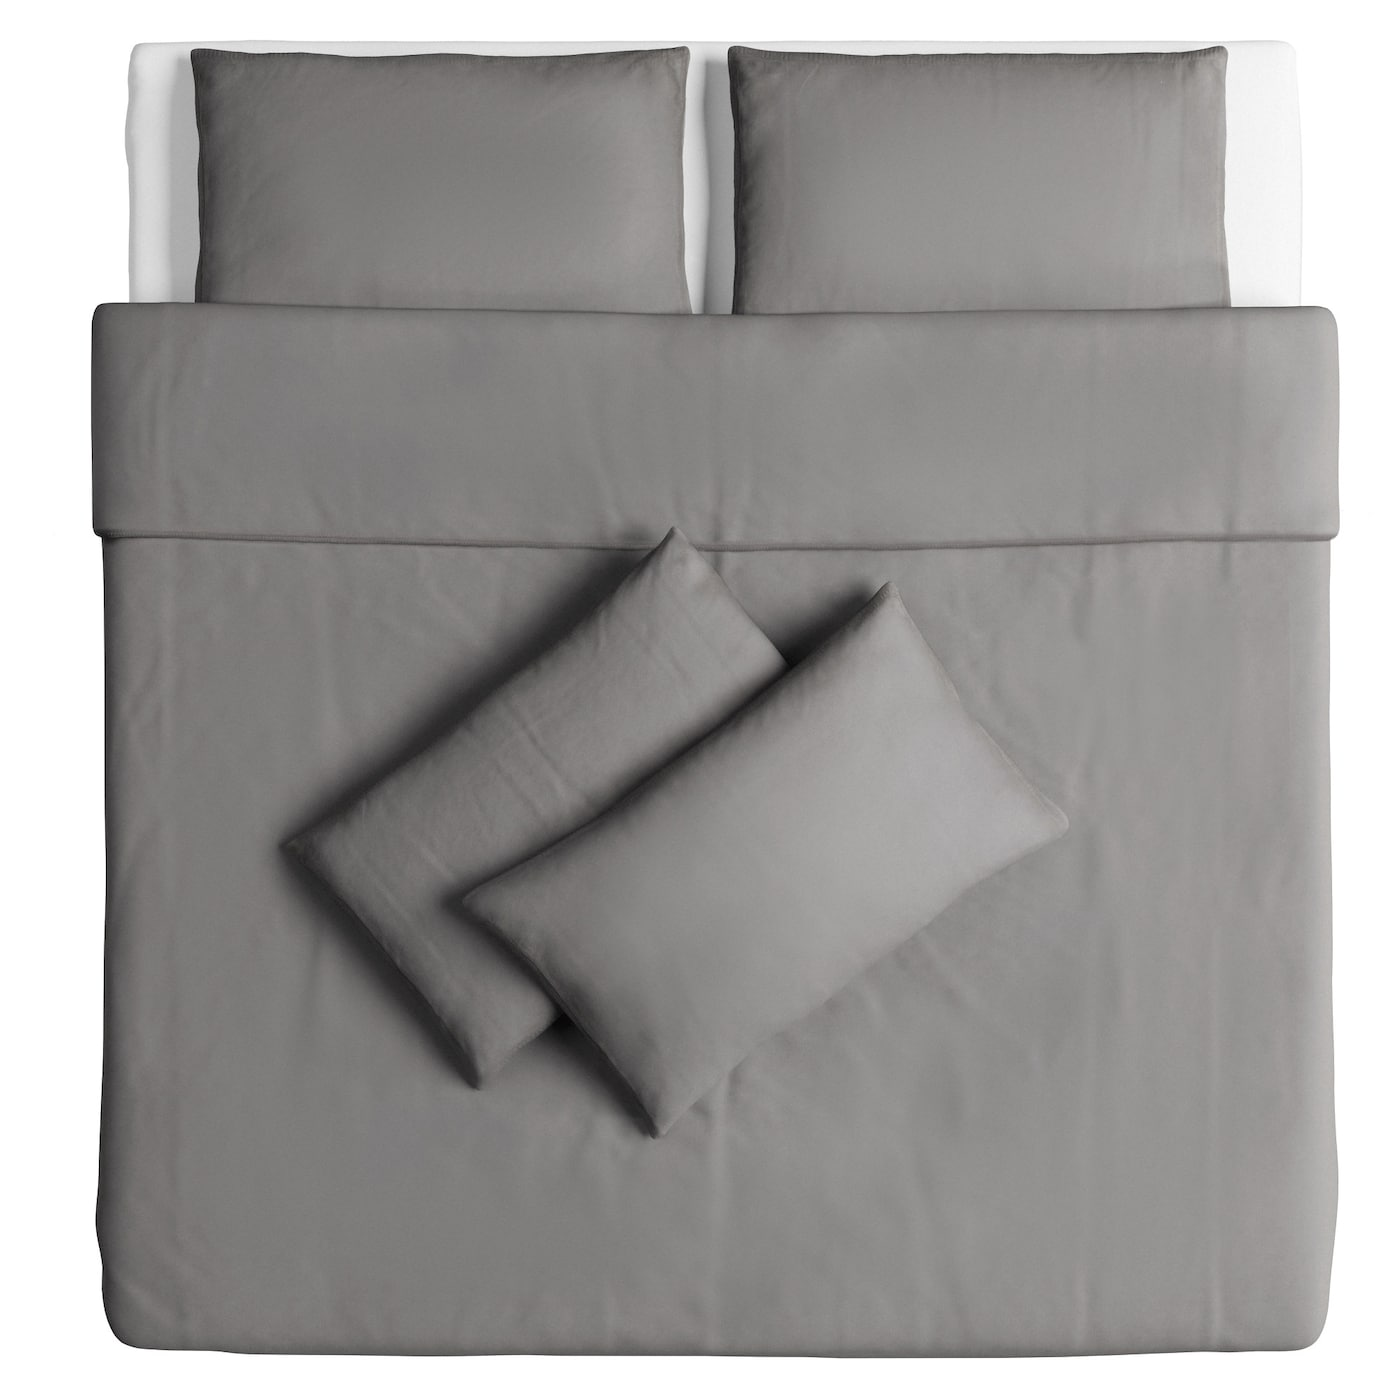 IKEA ÄNGSLILJA quilt cover and 4 pillowcases Cotton, feels soft and nice against your skin.